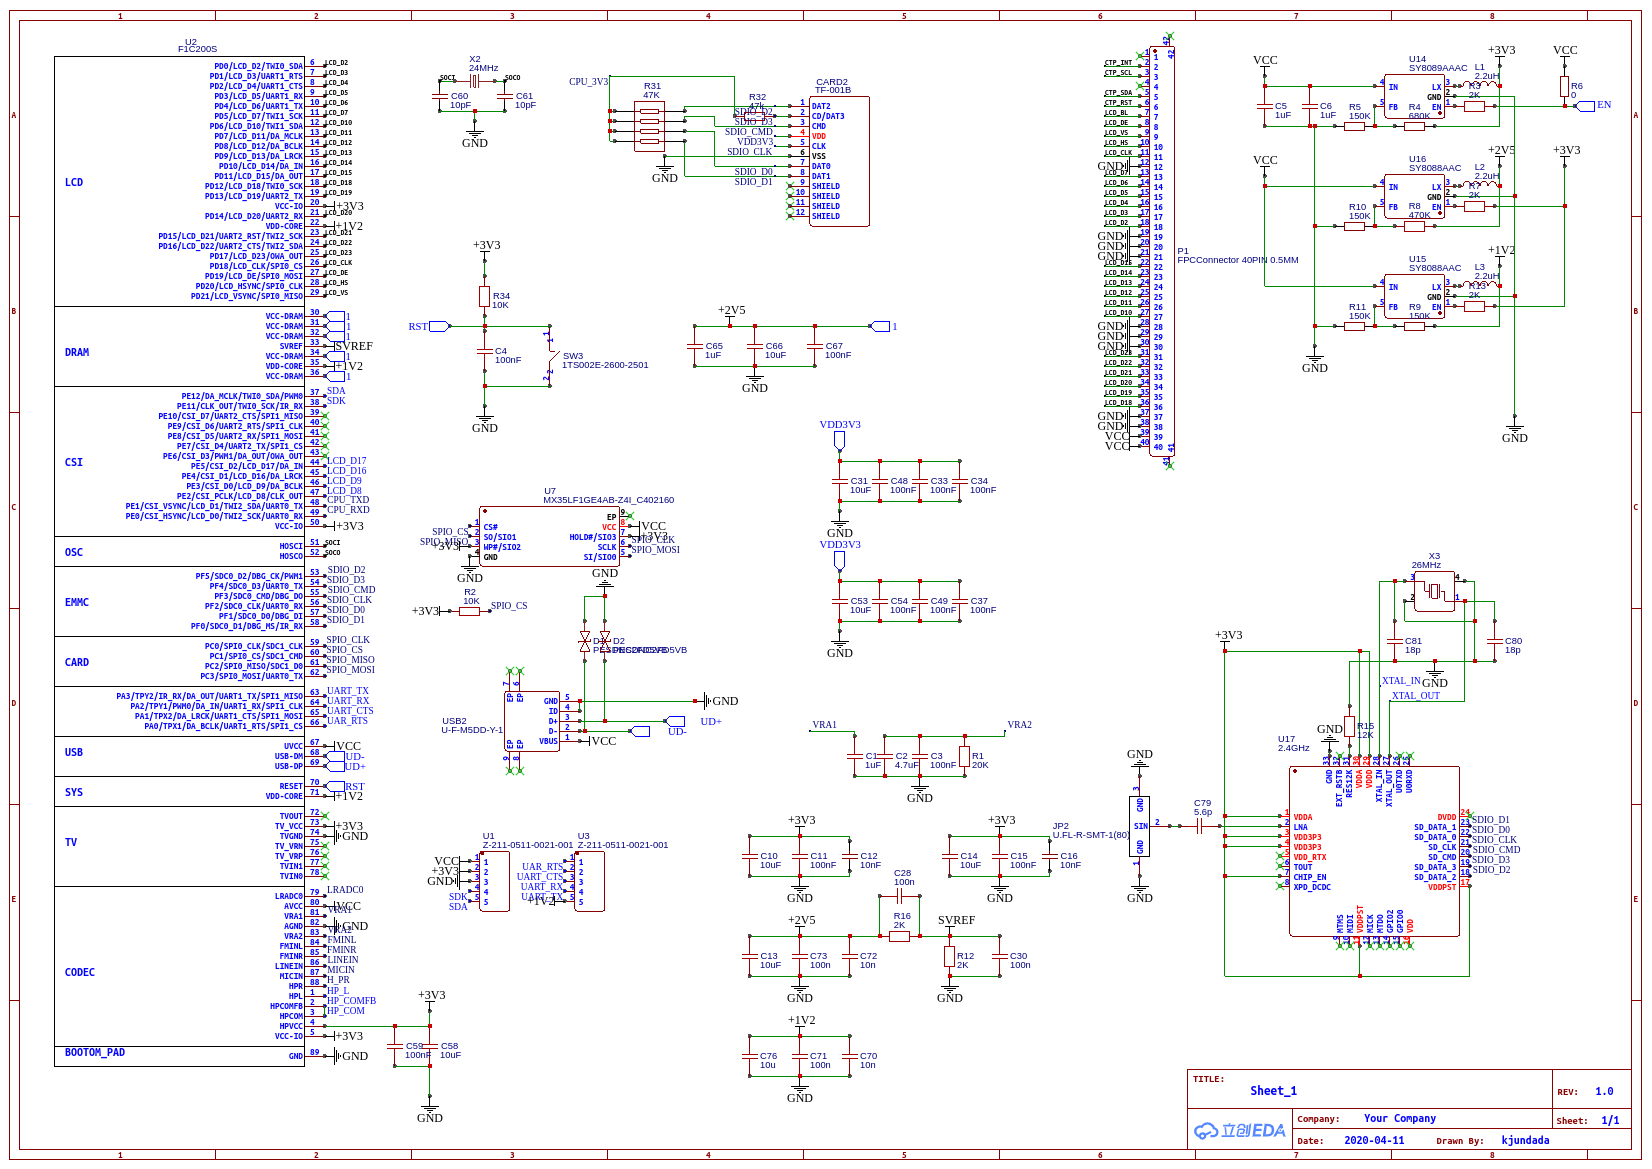 Schematic_micro-computer_2020-04-15_07-11-39.png